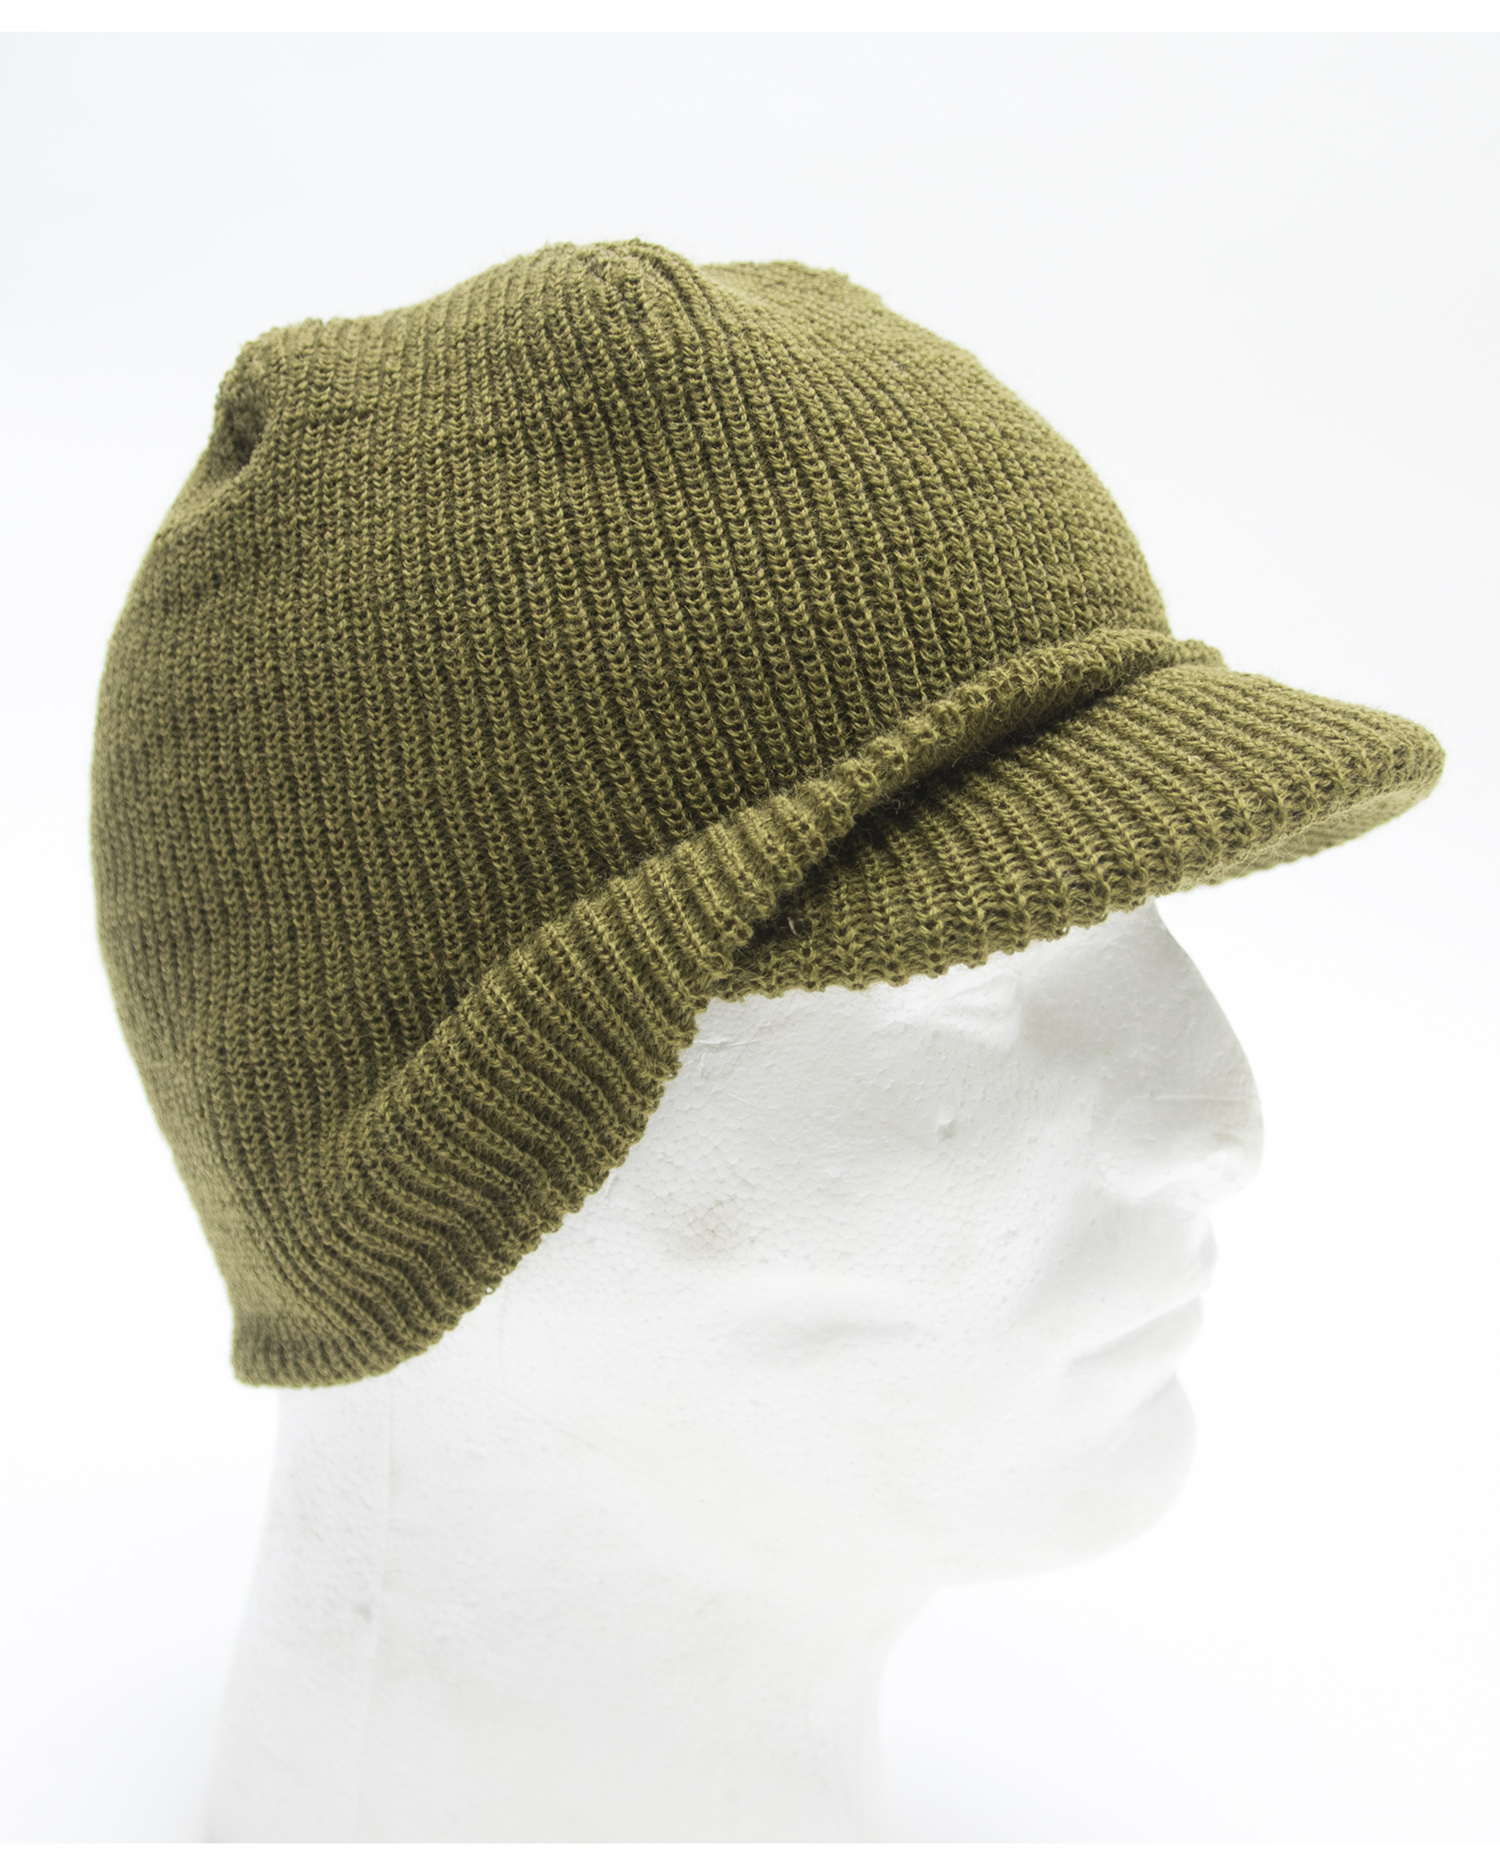 257e90dbd3c M1941 wool knit cap with short visor designed to be worn under the steel  helmet. Commonly known as the